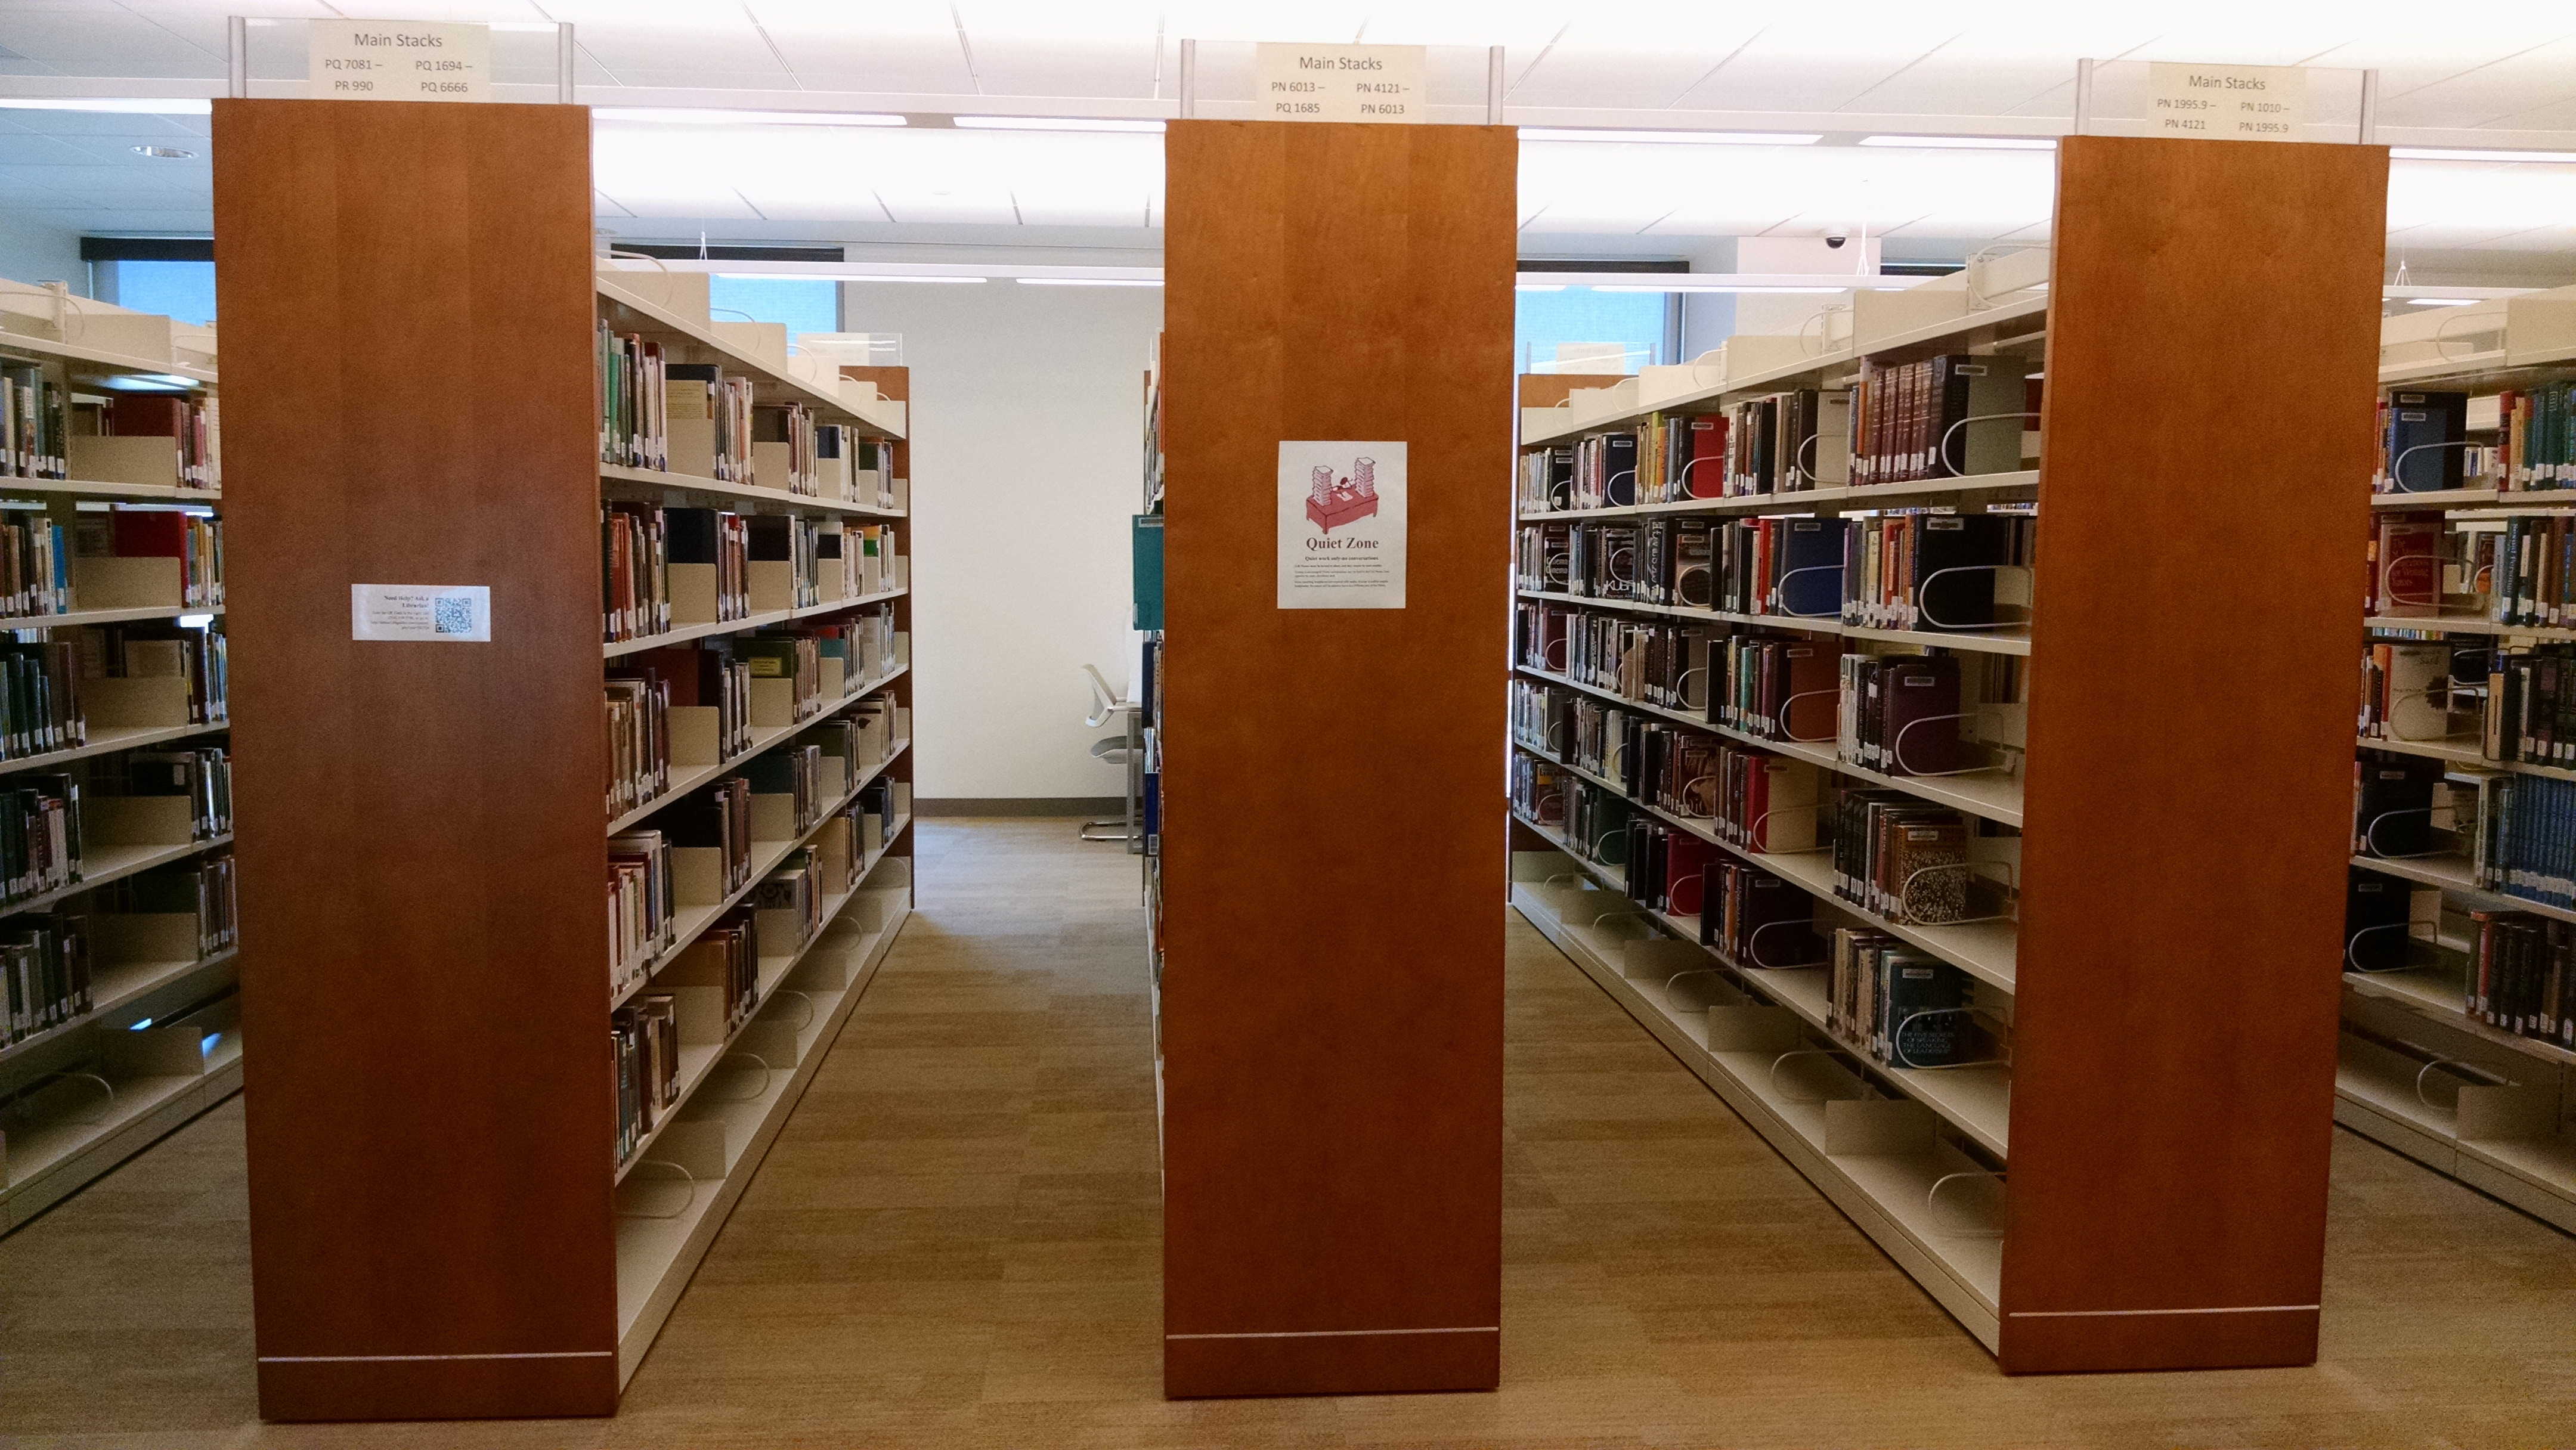 Library shelving and books.